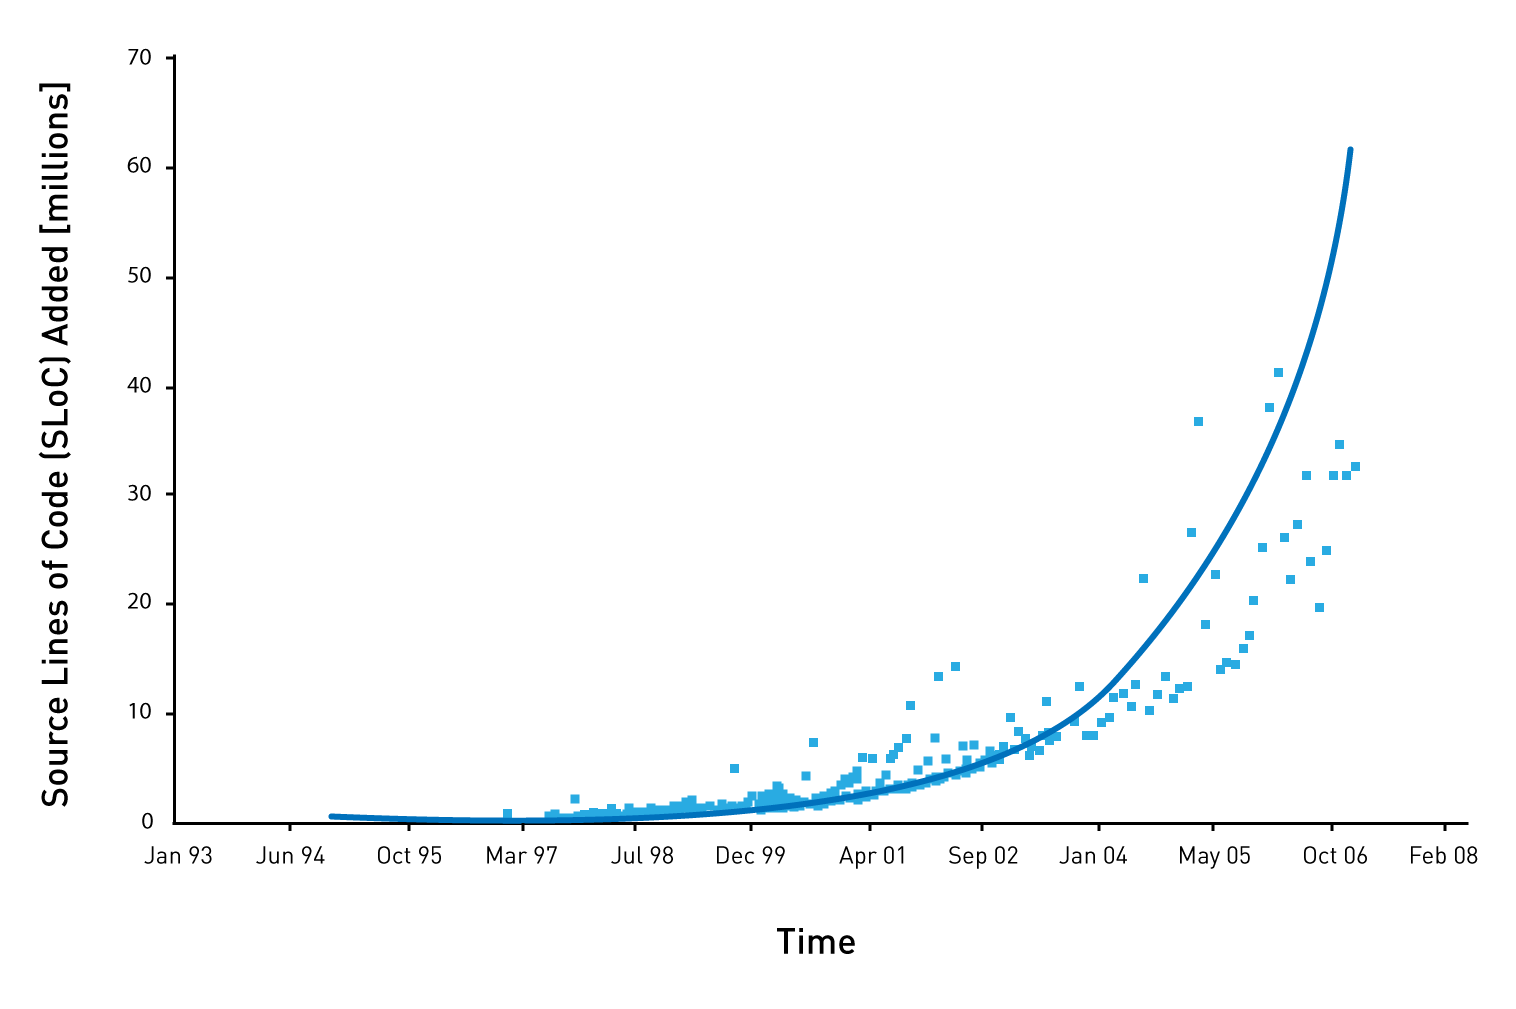 Line of source code committed in the millions over time. There's a radical acceleration around the turn of the century. Manufacturing can benefit from a similar adaption of open source.